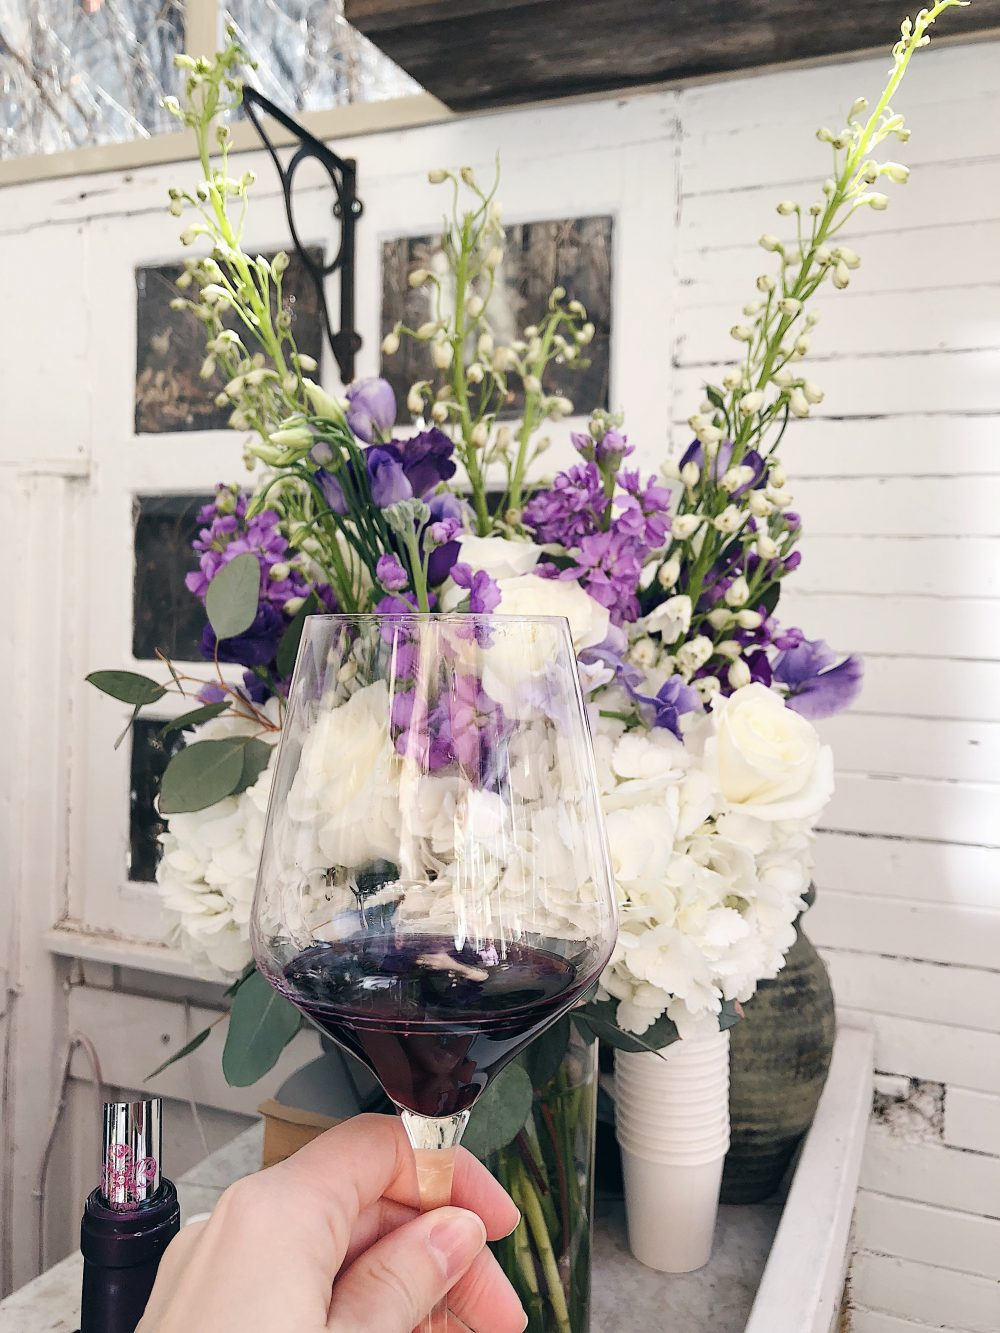 Spring Garden Party and a glass of Fleurie